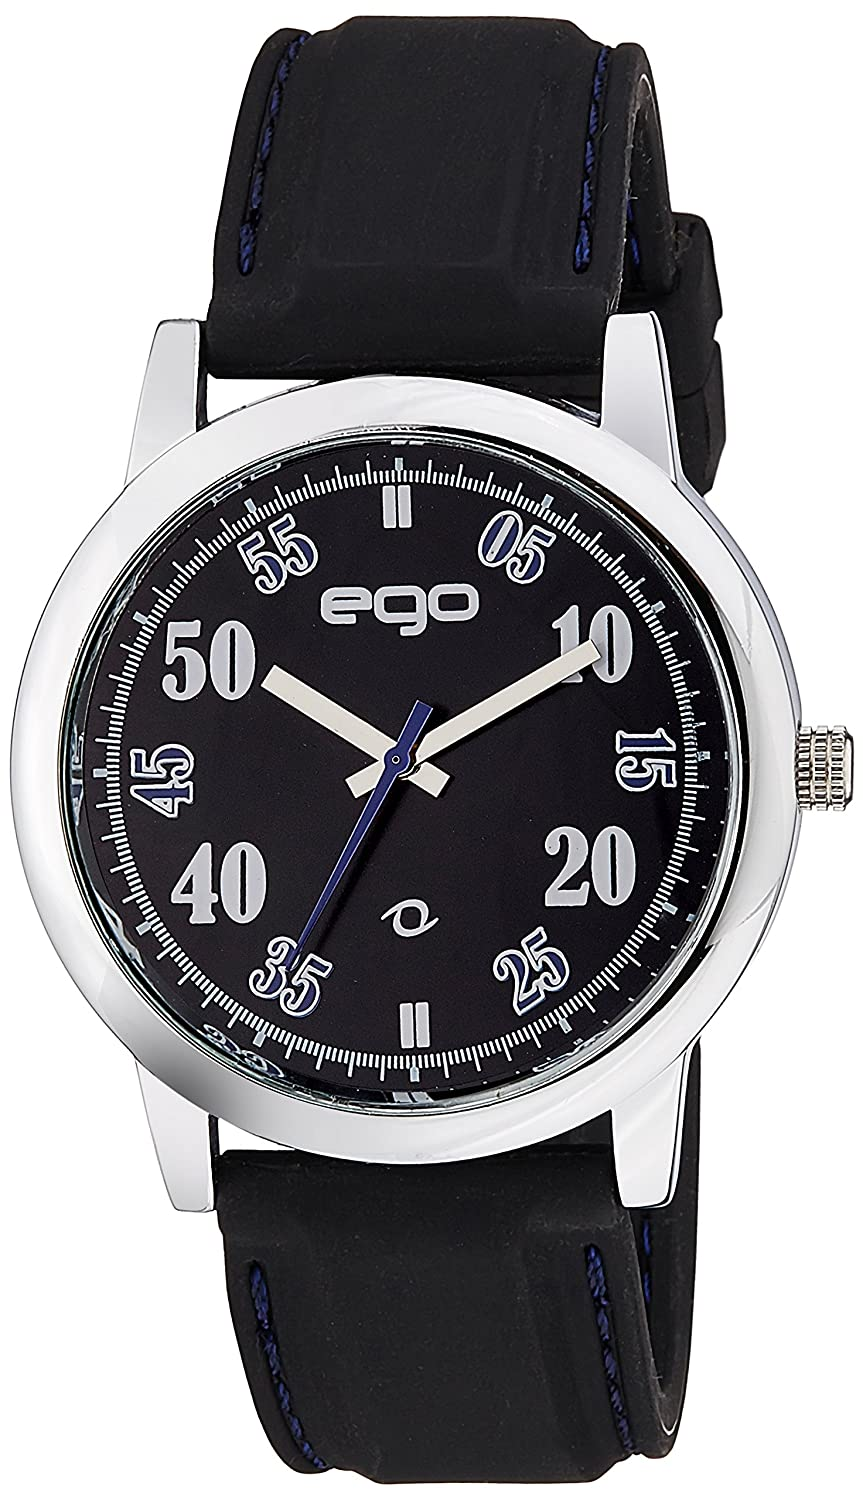 Flat 80% off on Maxima Ego Watches @ Amazon.in – Fashion & Apparels